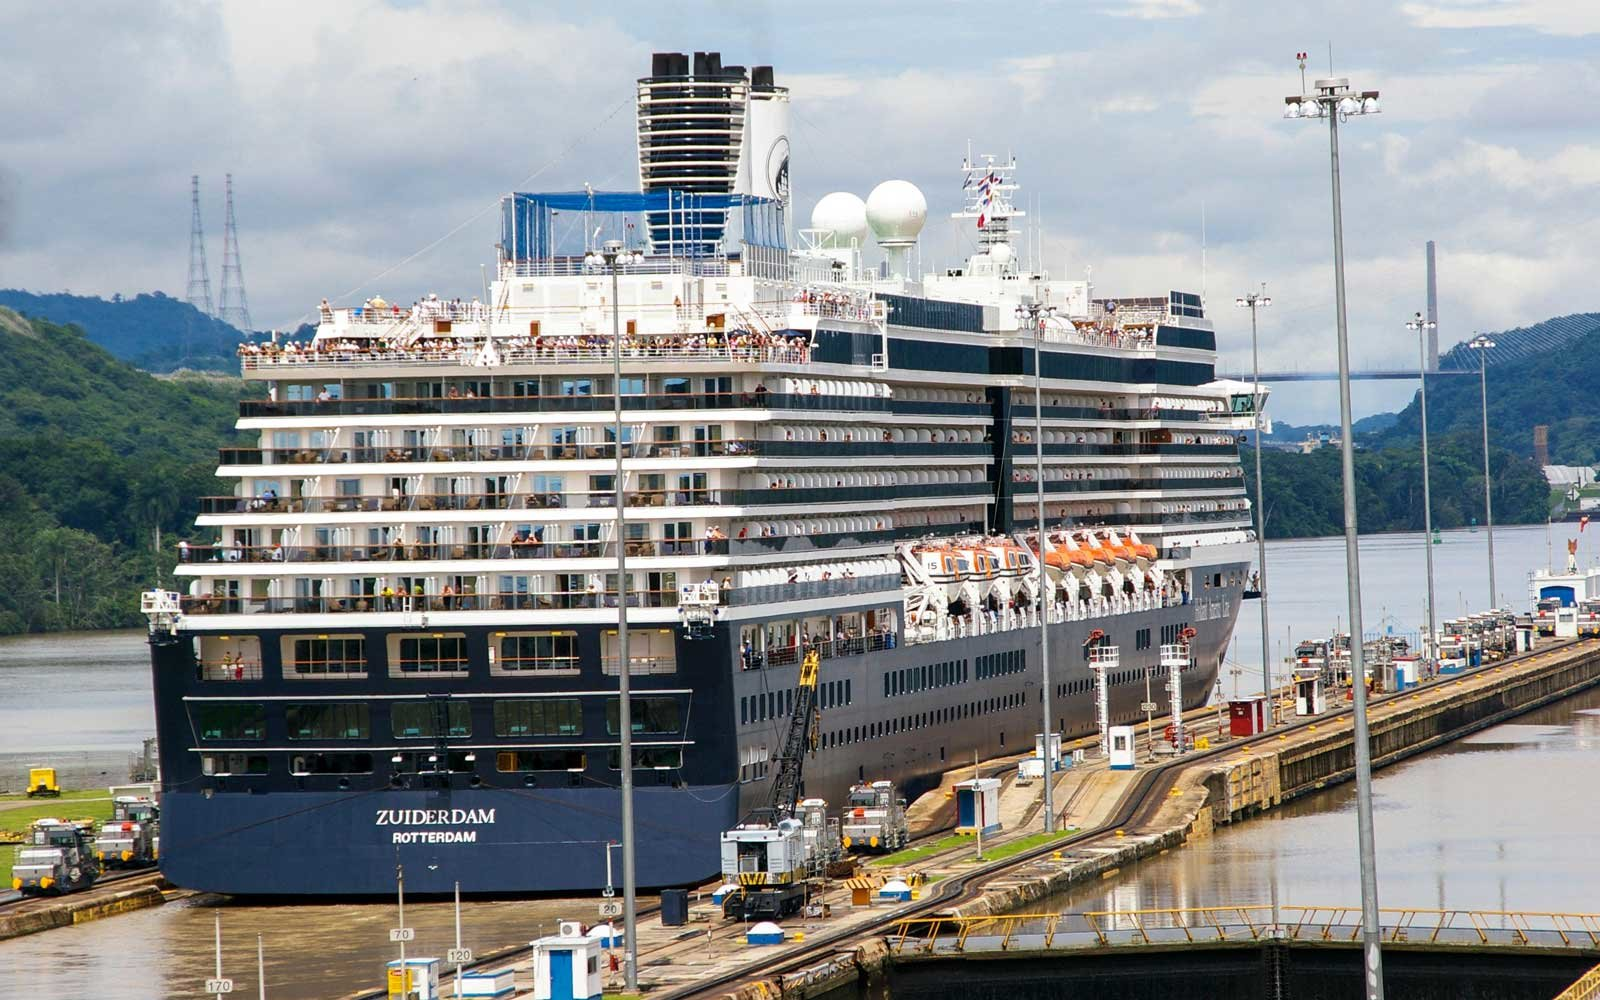 Holland America's Zuiderdam ship on the Panama Canal